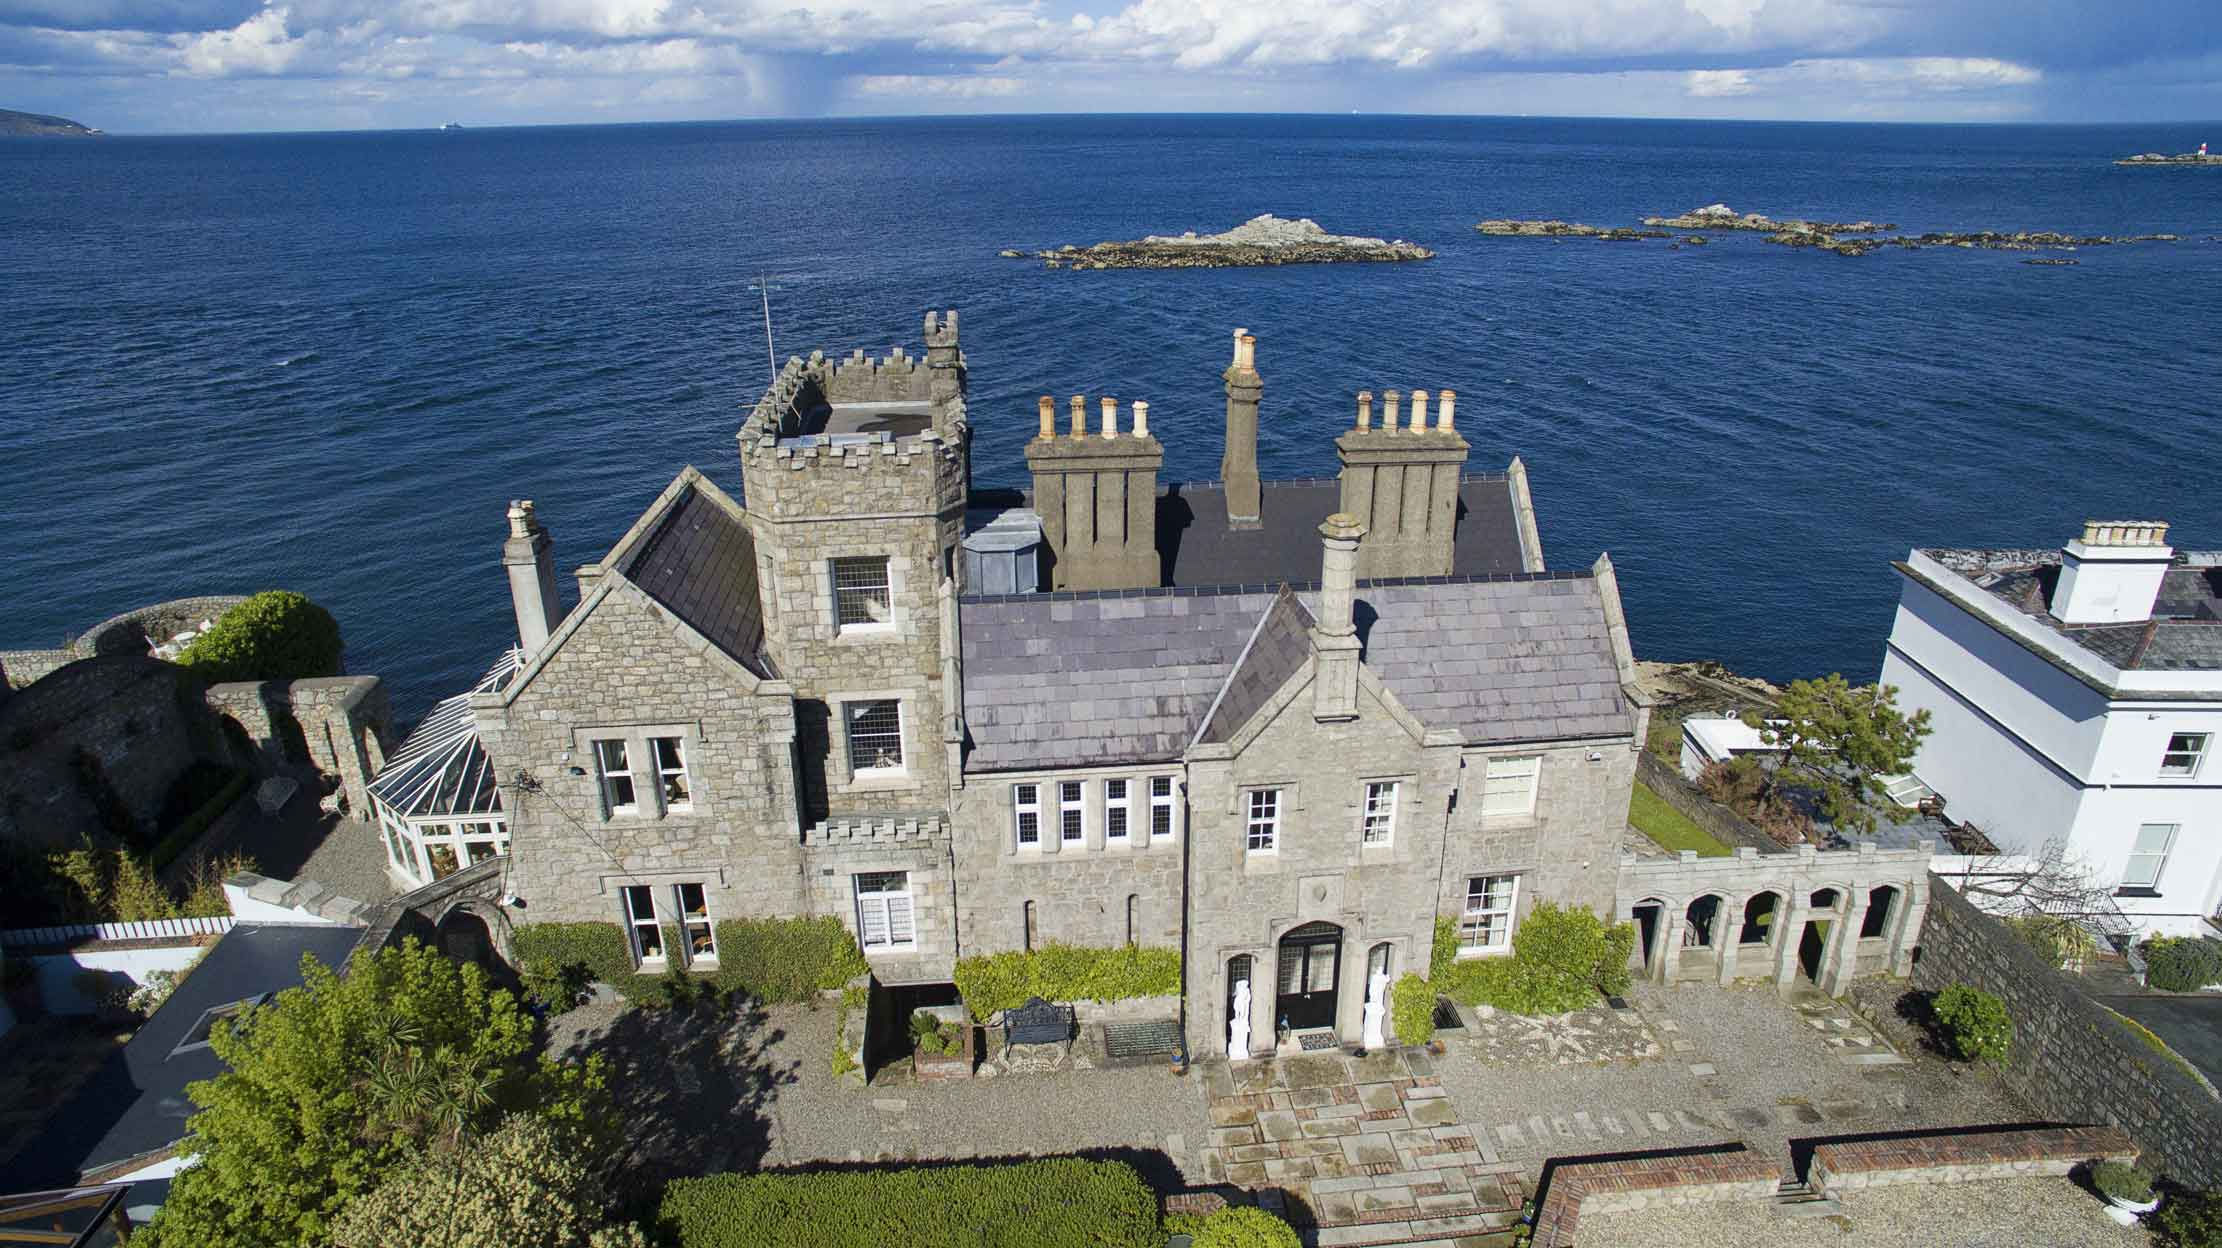 Just 10 minutes from Dublin City Centre, Inniscorrig Castle, a romantic Gothic-Revival mansion, seems a world away. The ever-changing scenery of Dublin Bay and the Irish Sea are on permanent display from the conservatory, which doubles as an observatory after dark.